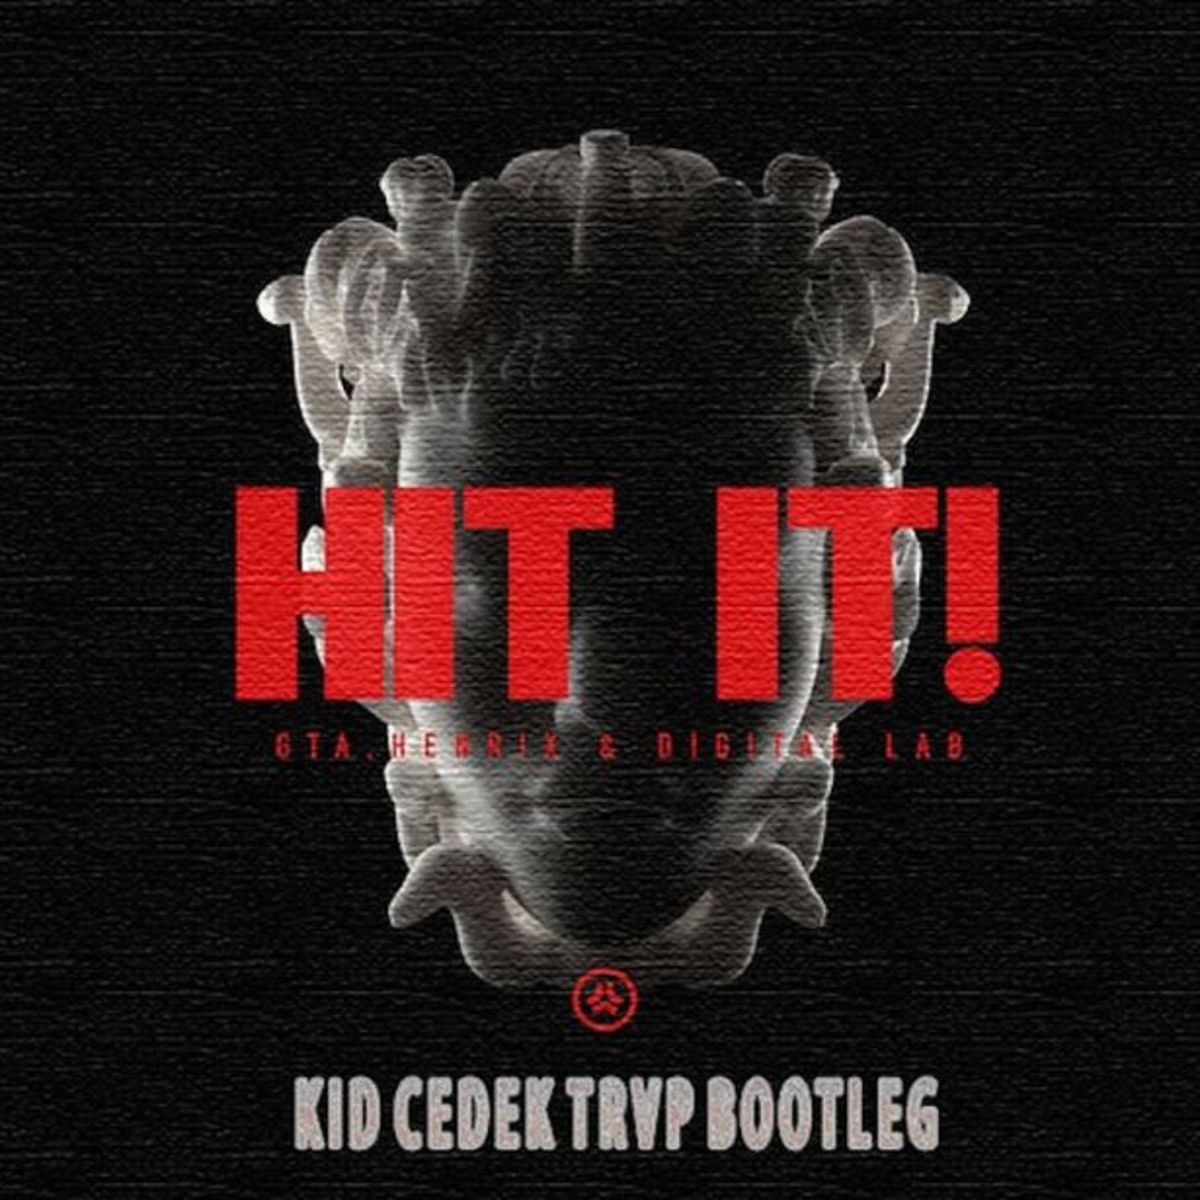 "EDM Download: Kid Cedek's Trap Bootleg of GTA, Digital Lab and Henrix's ""Hit It"""